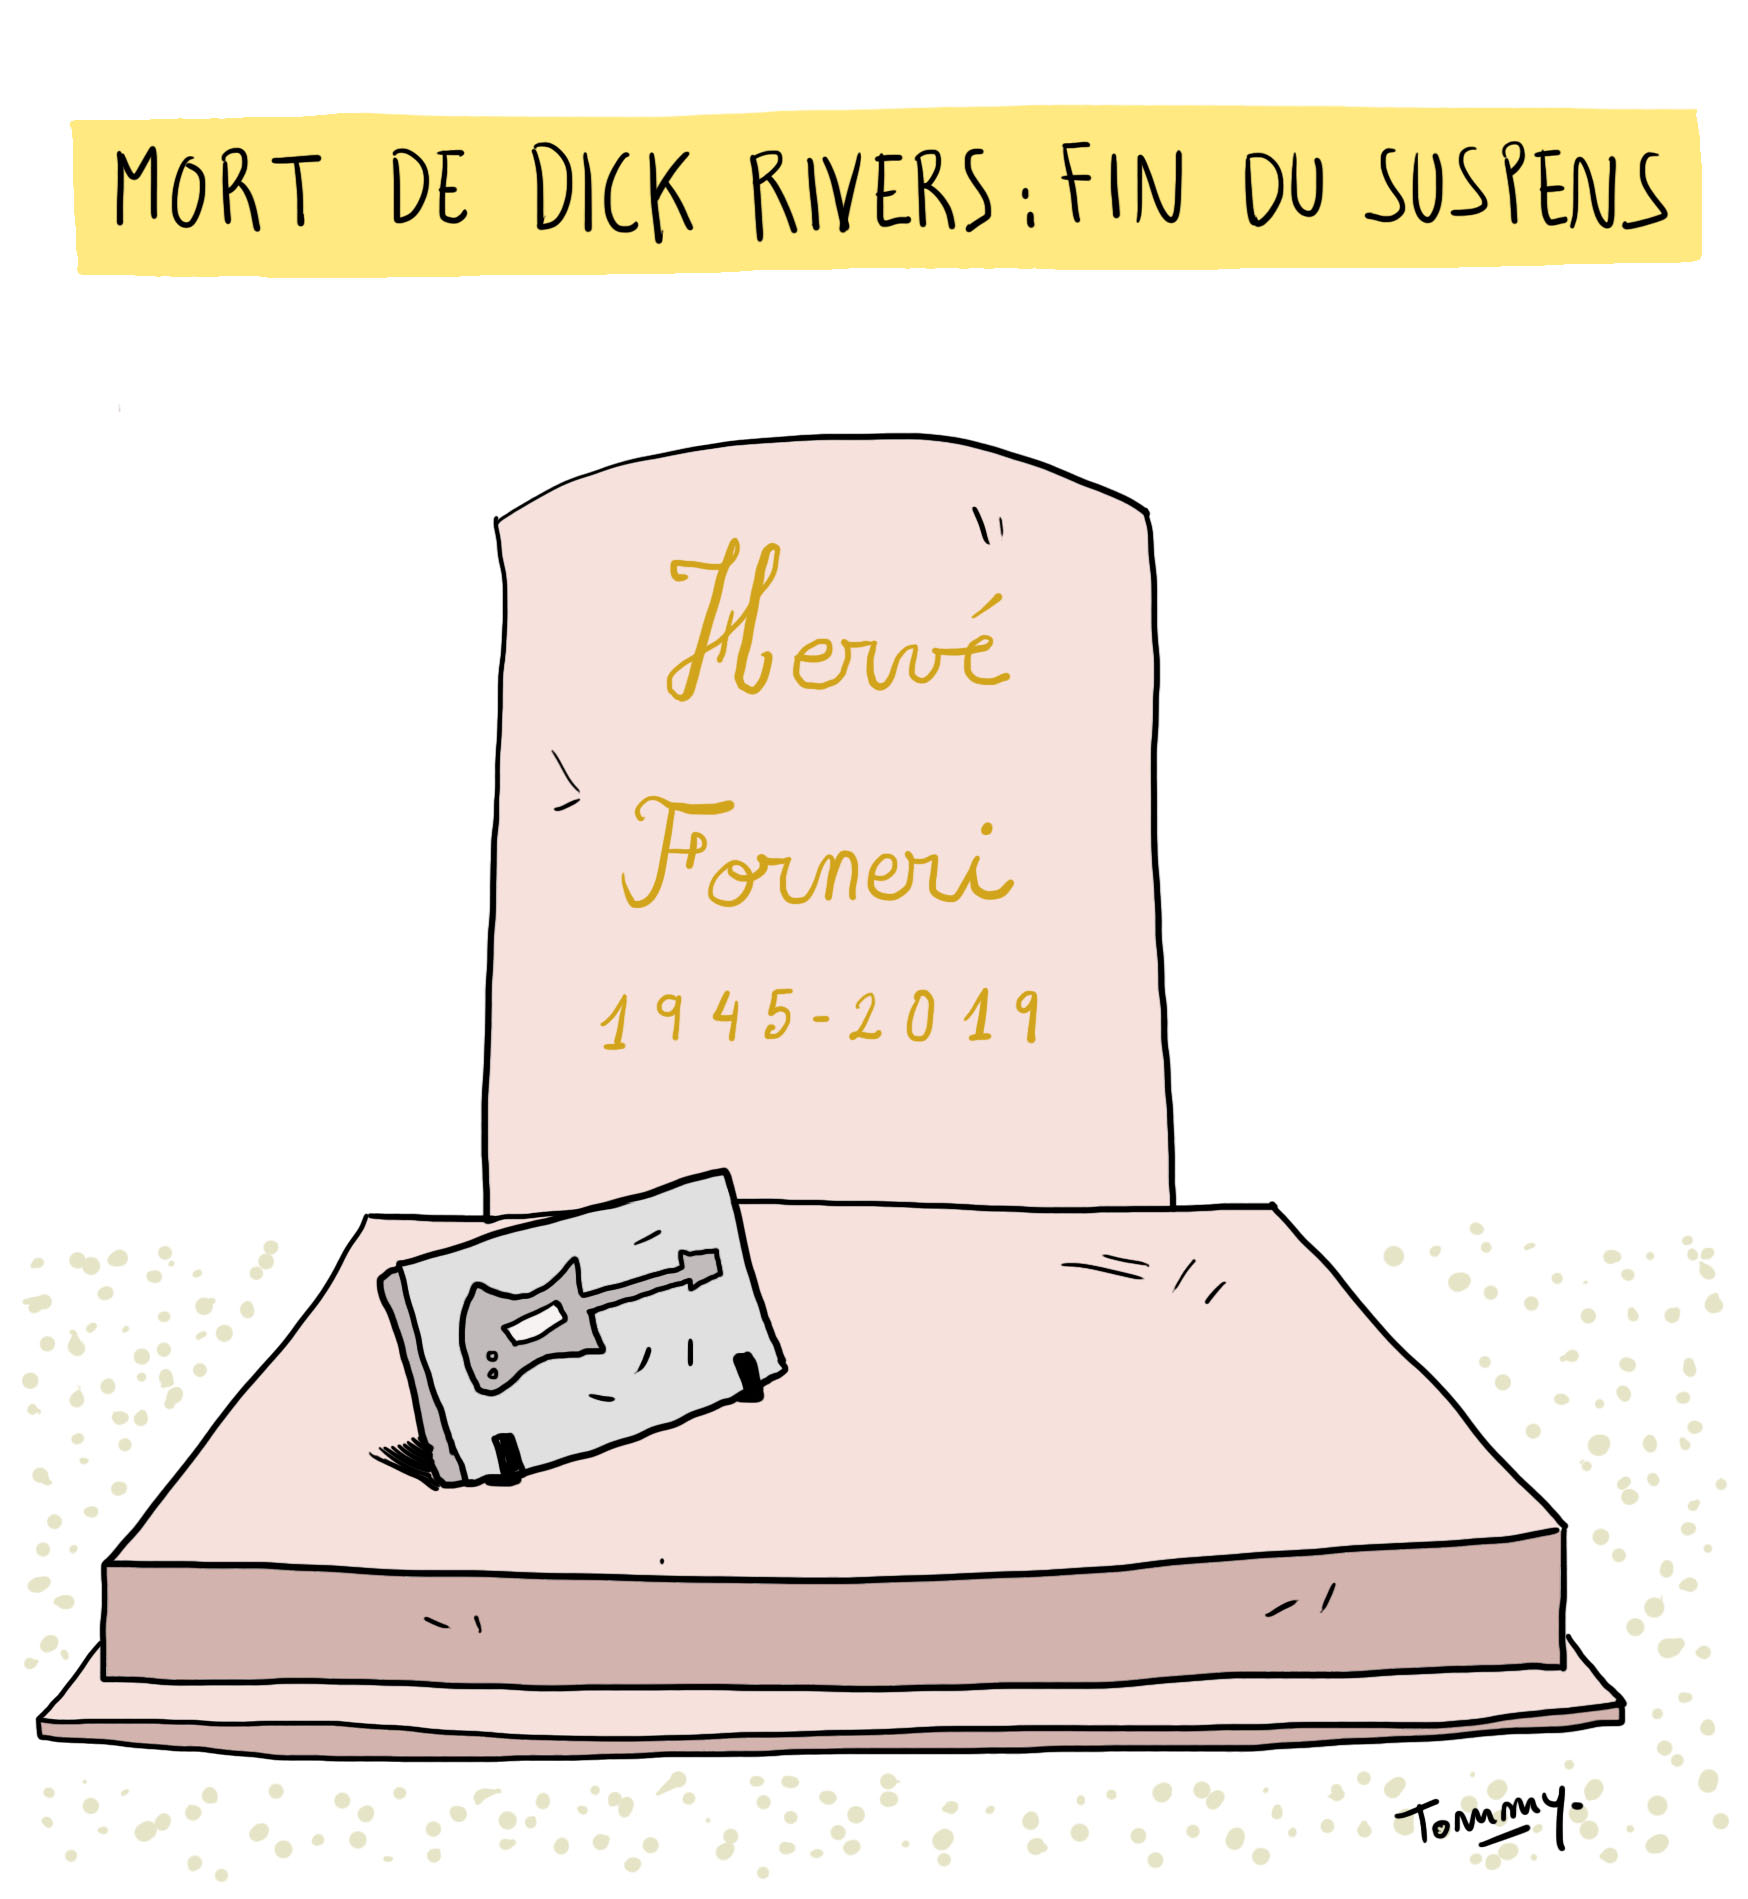 Mort de Dick Rivers